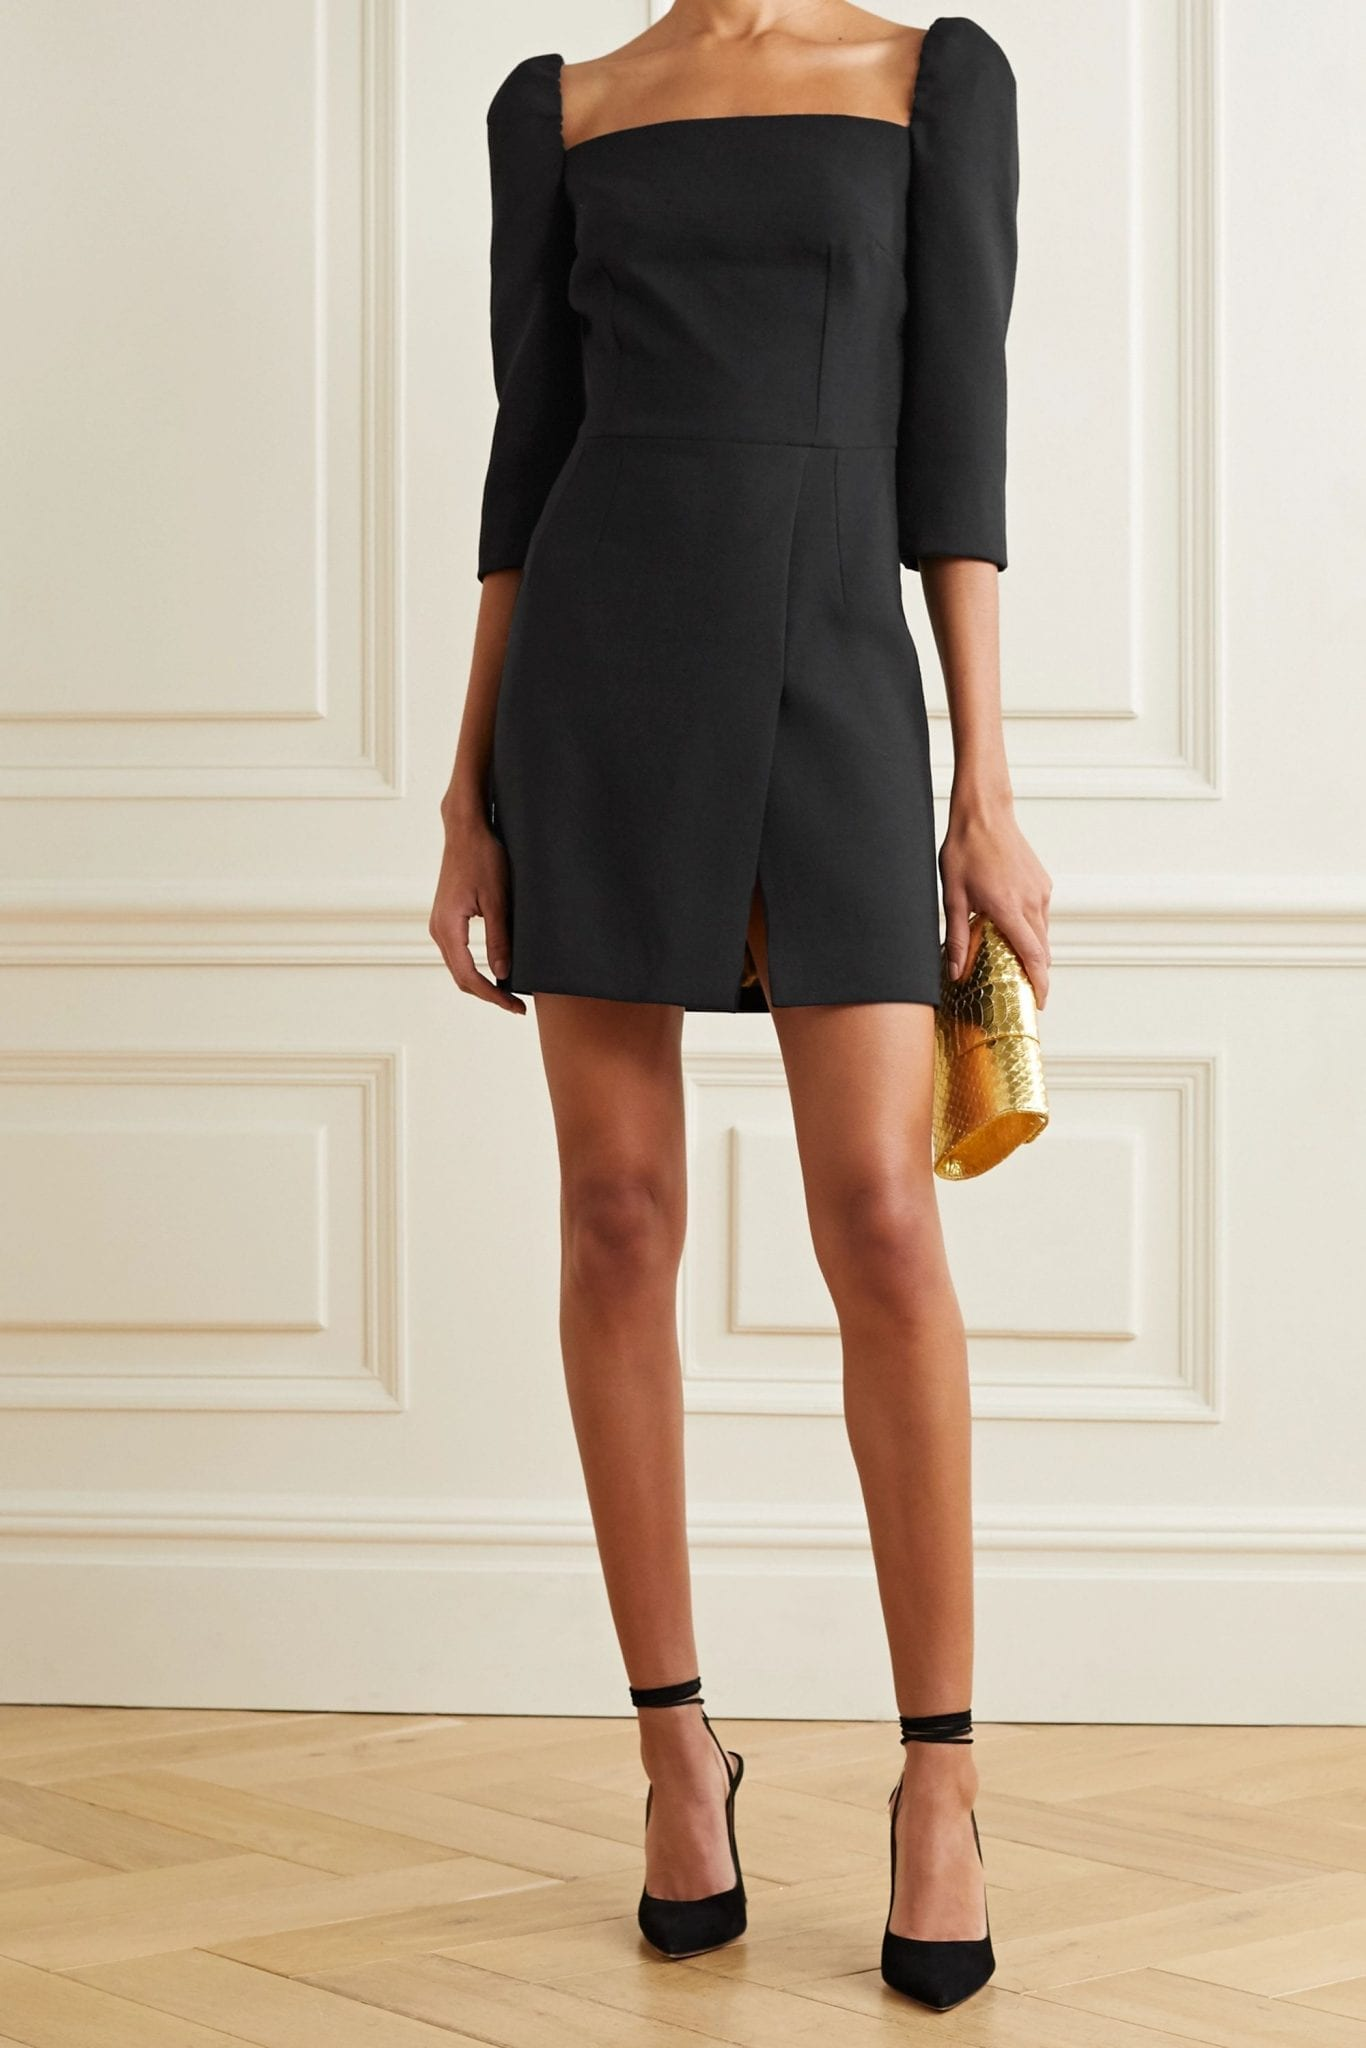 DOLCE & GABBANA Wool-blend Crepe Mini Dress